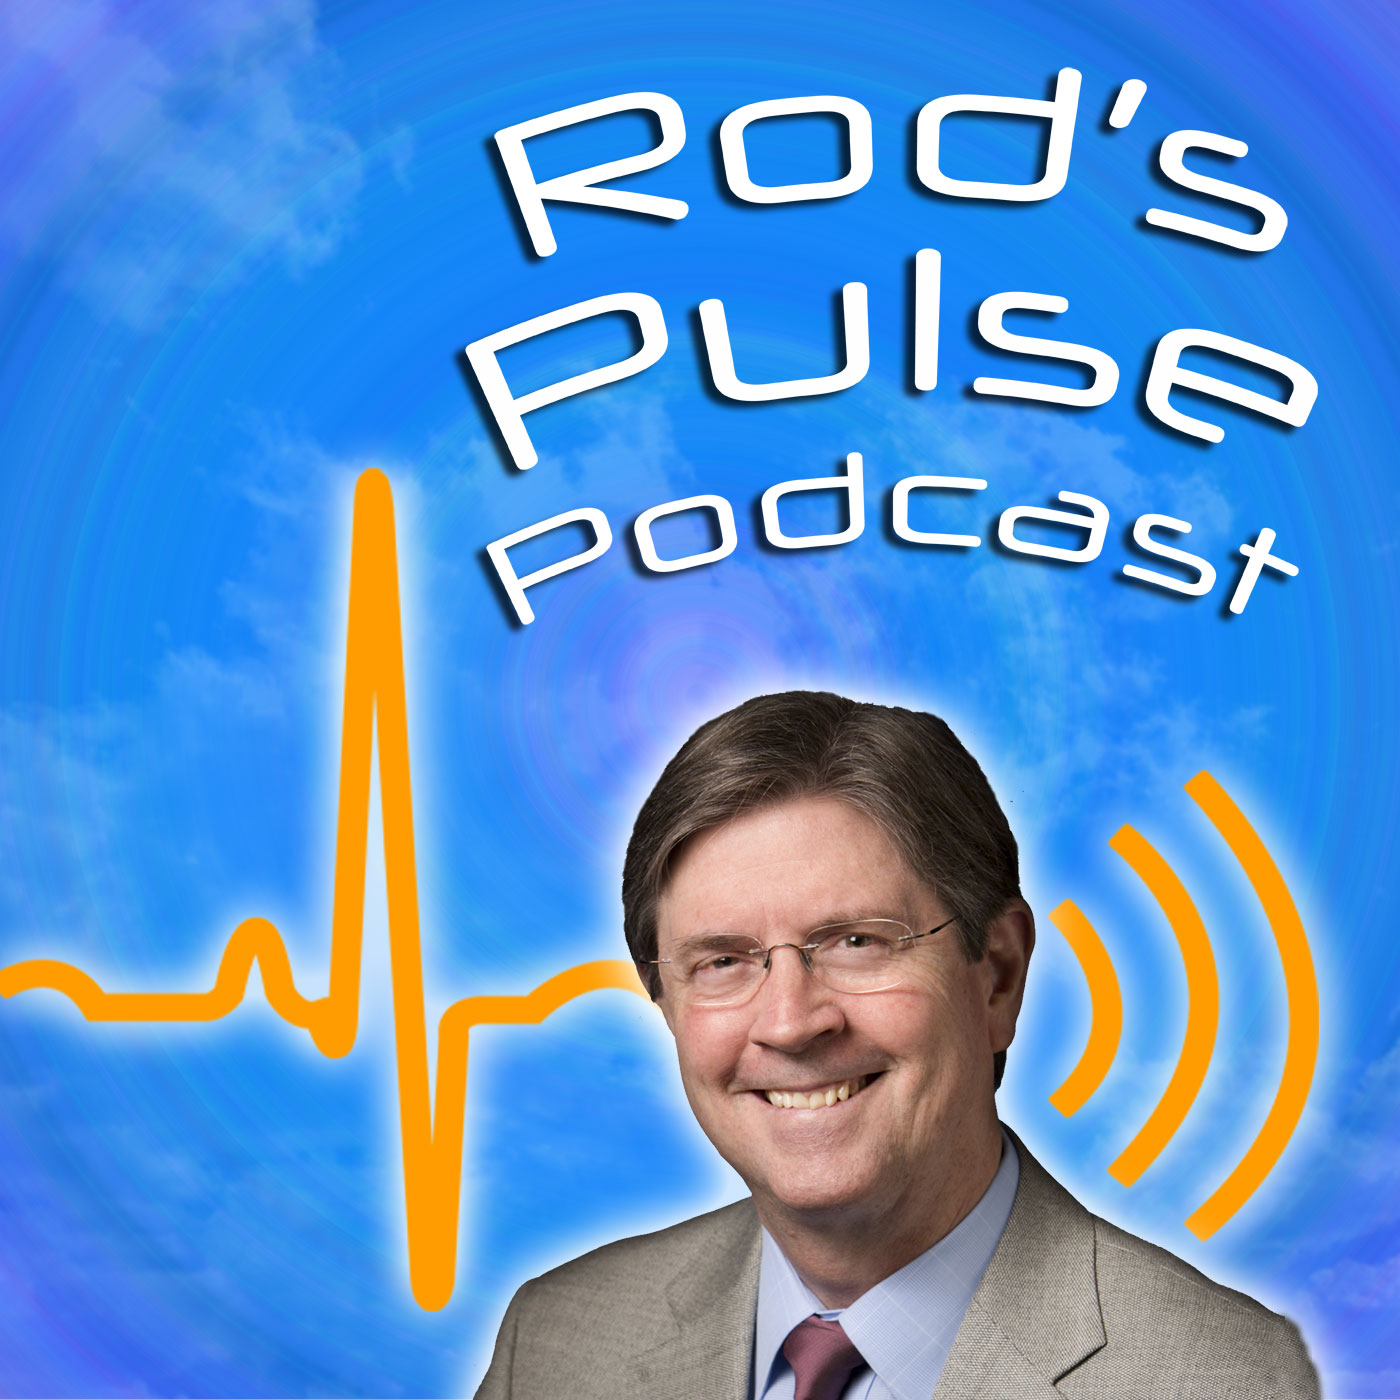 Rod's Pulse Podcast